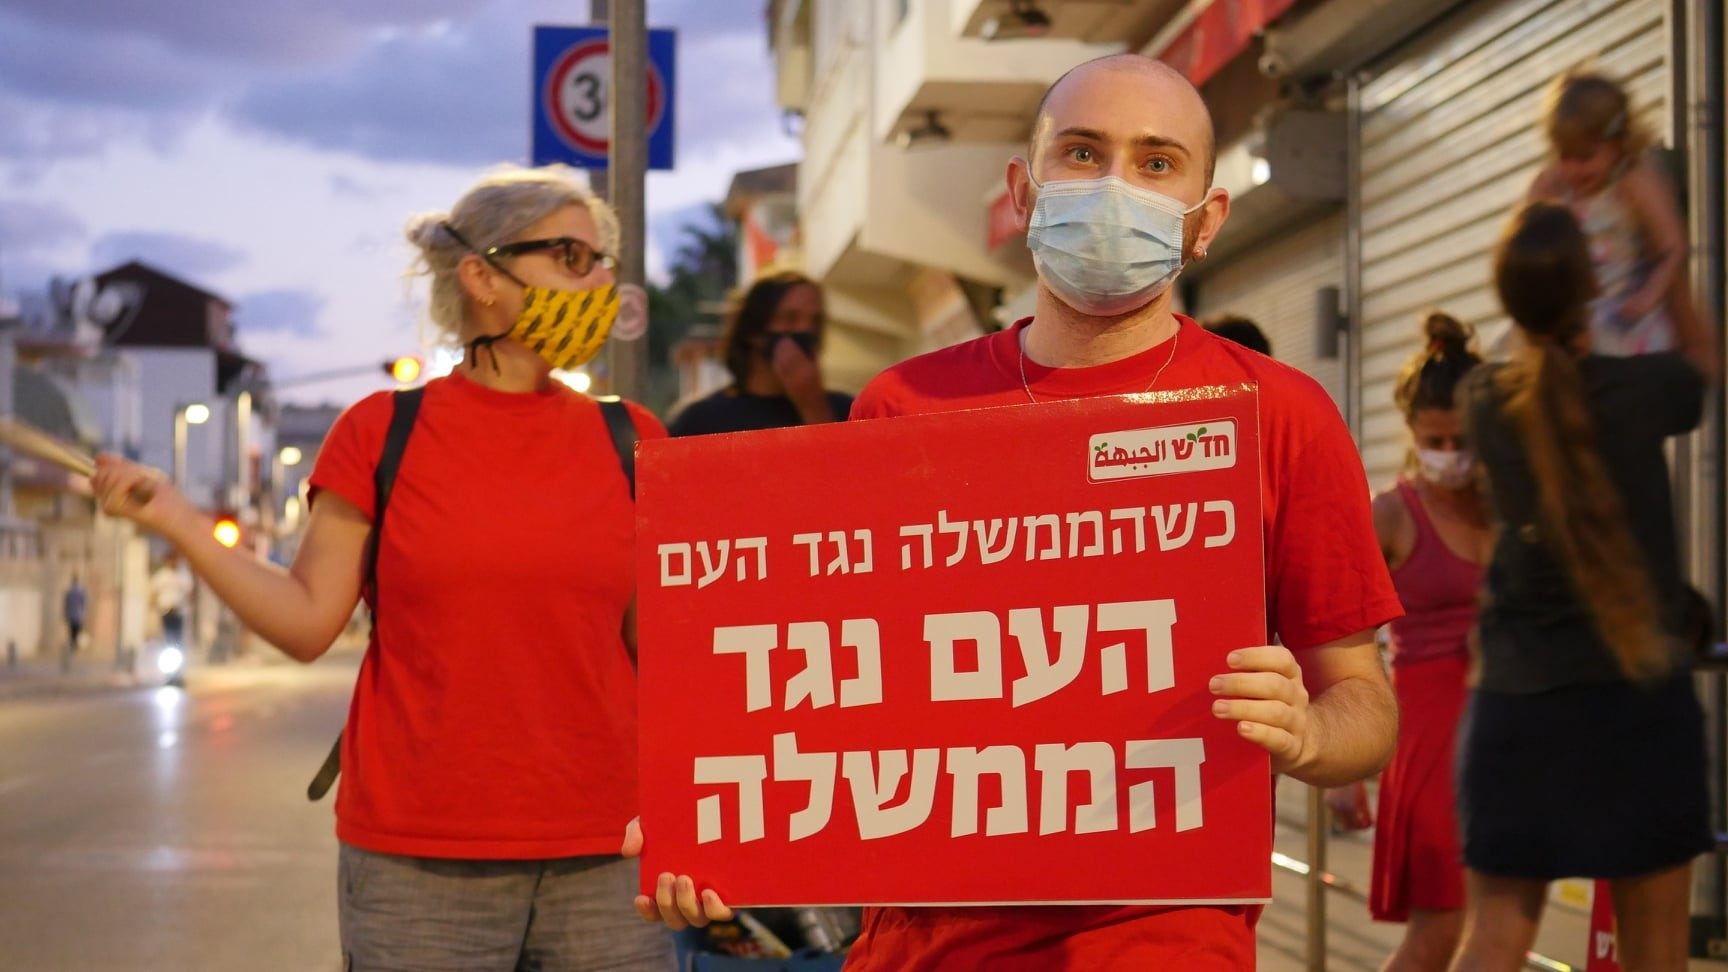 """Communist demonstrators distance-protest in south Tel Aviv, one of many hundreds that took place Saturday evening, October 10. The red Hadash placard reads, """"When the government is against the people, the people are against the government."""""""